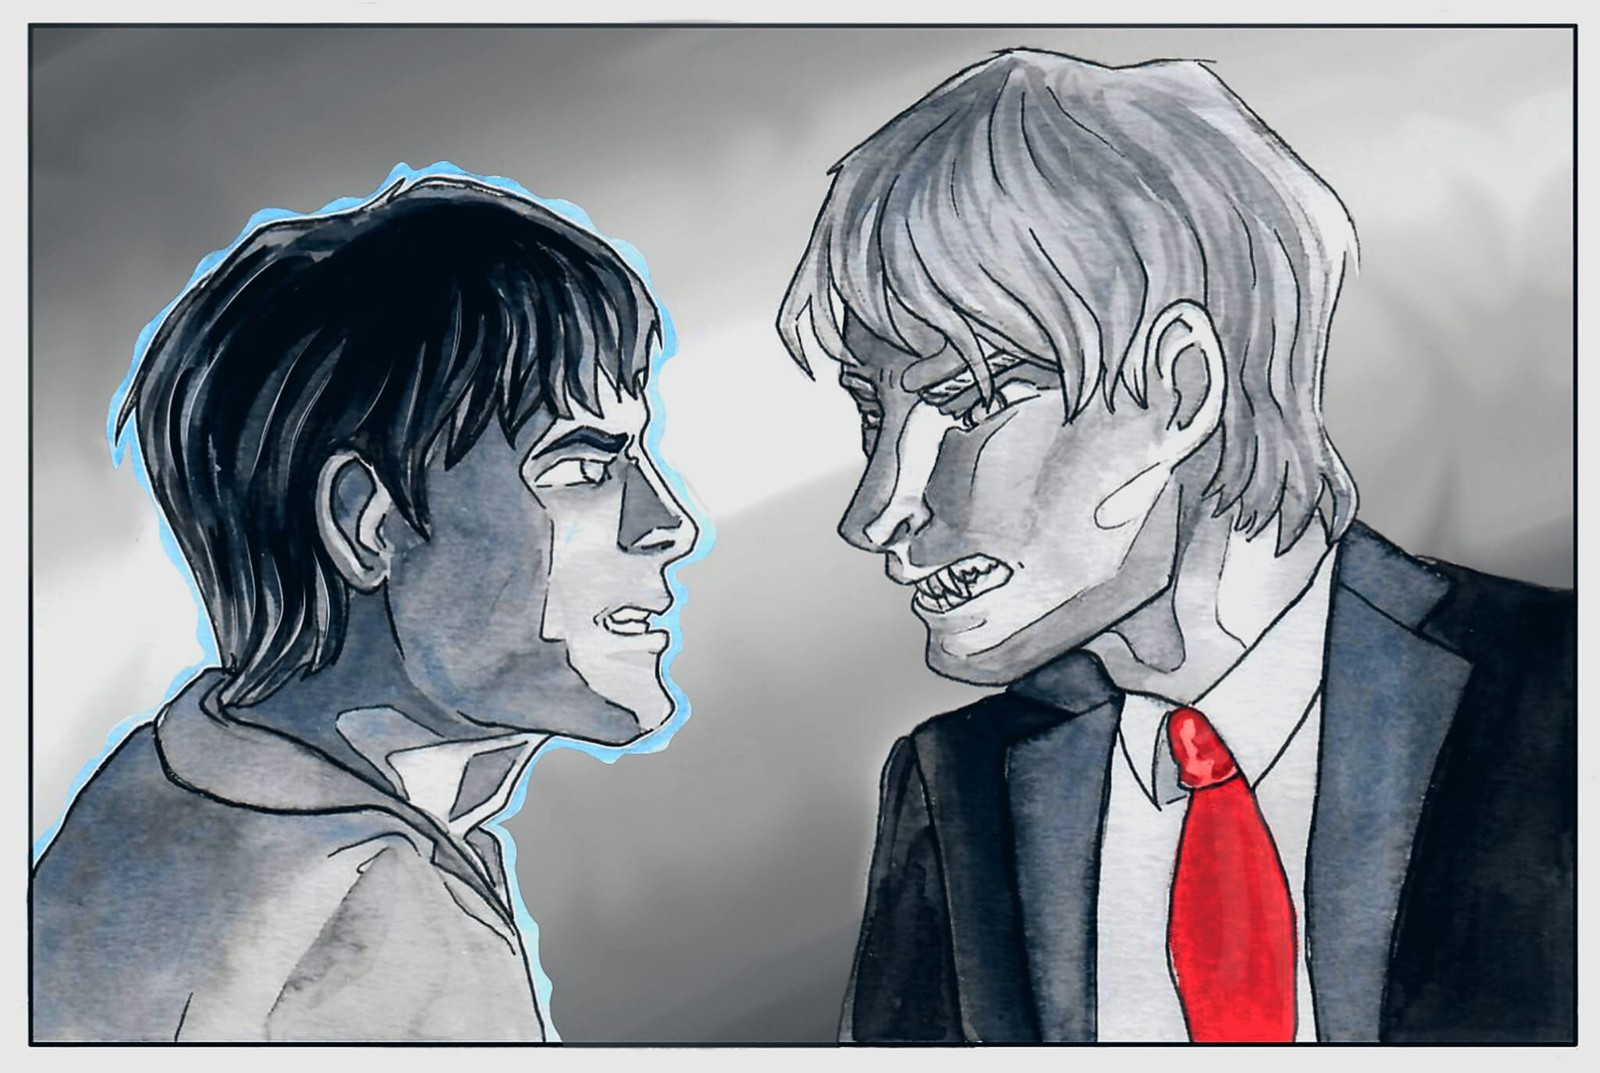 Arthur and Merlin's stand-off